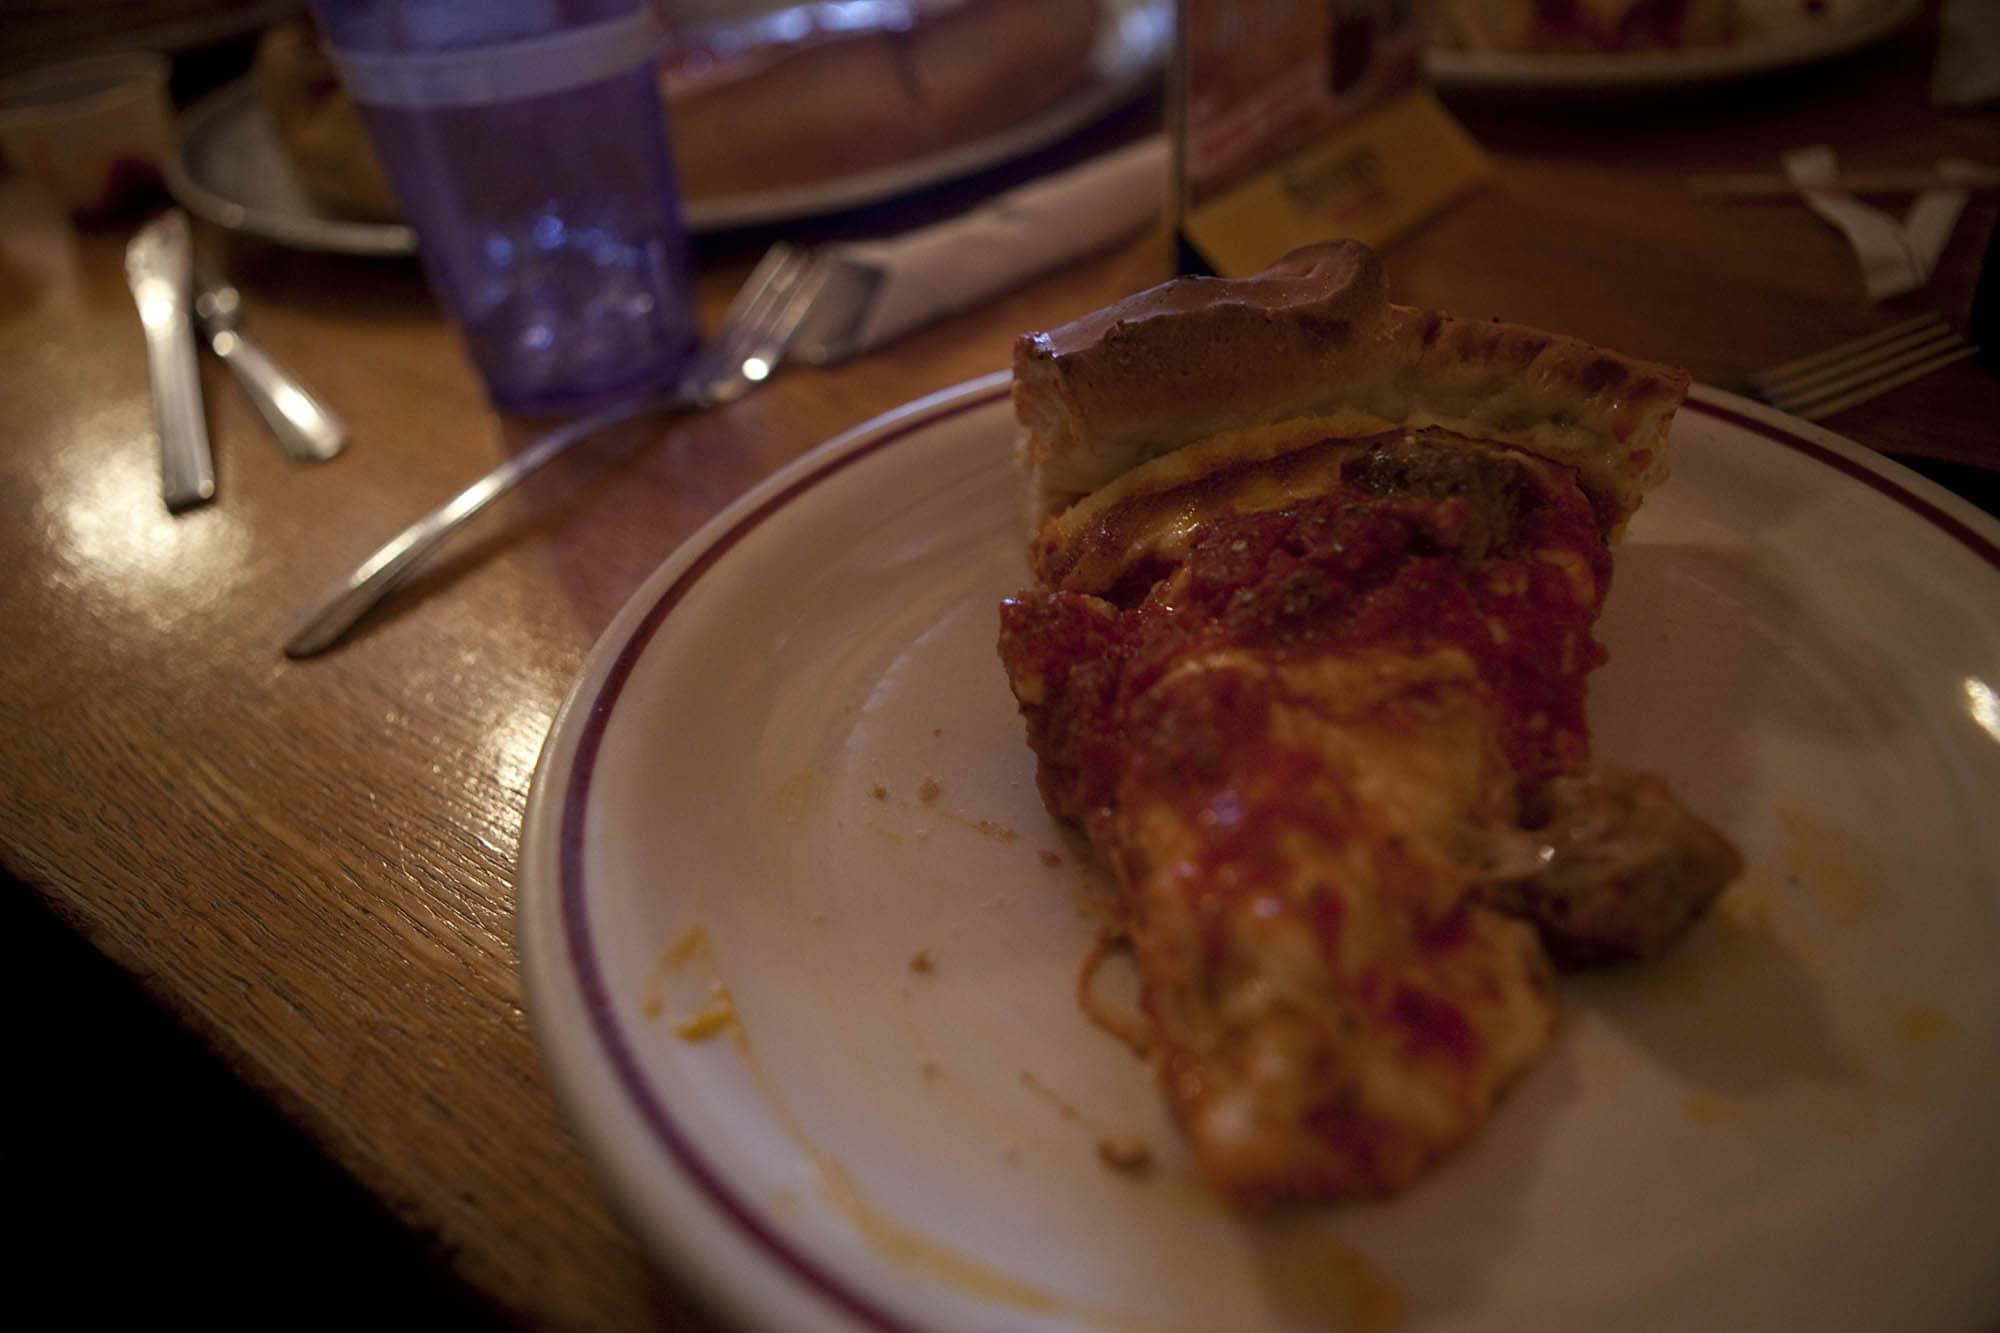 Stuffed pizza at Papa Del's pizza in Champaign, Illinois